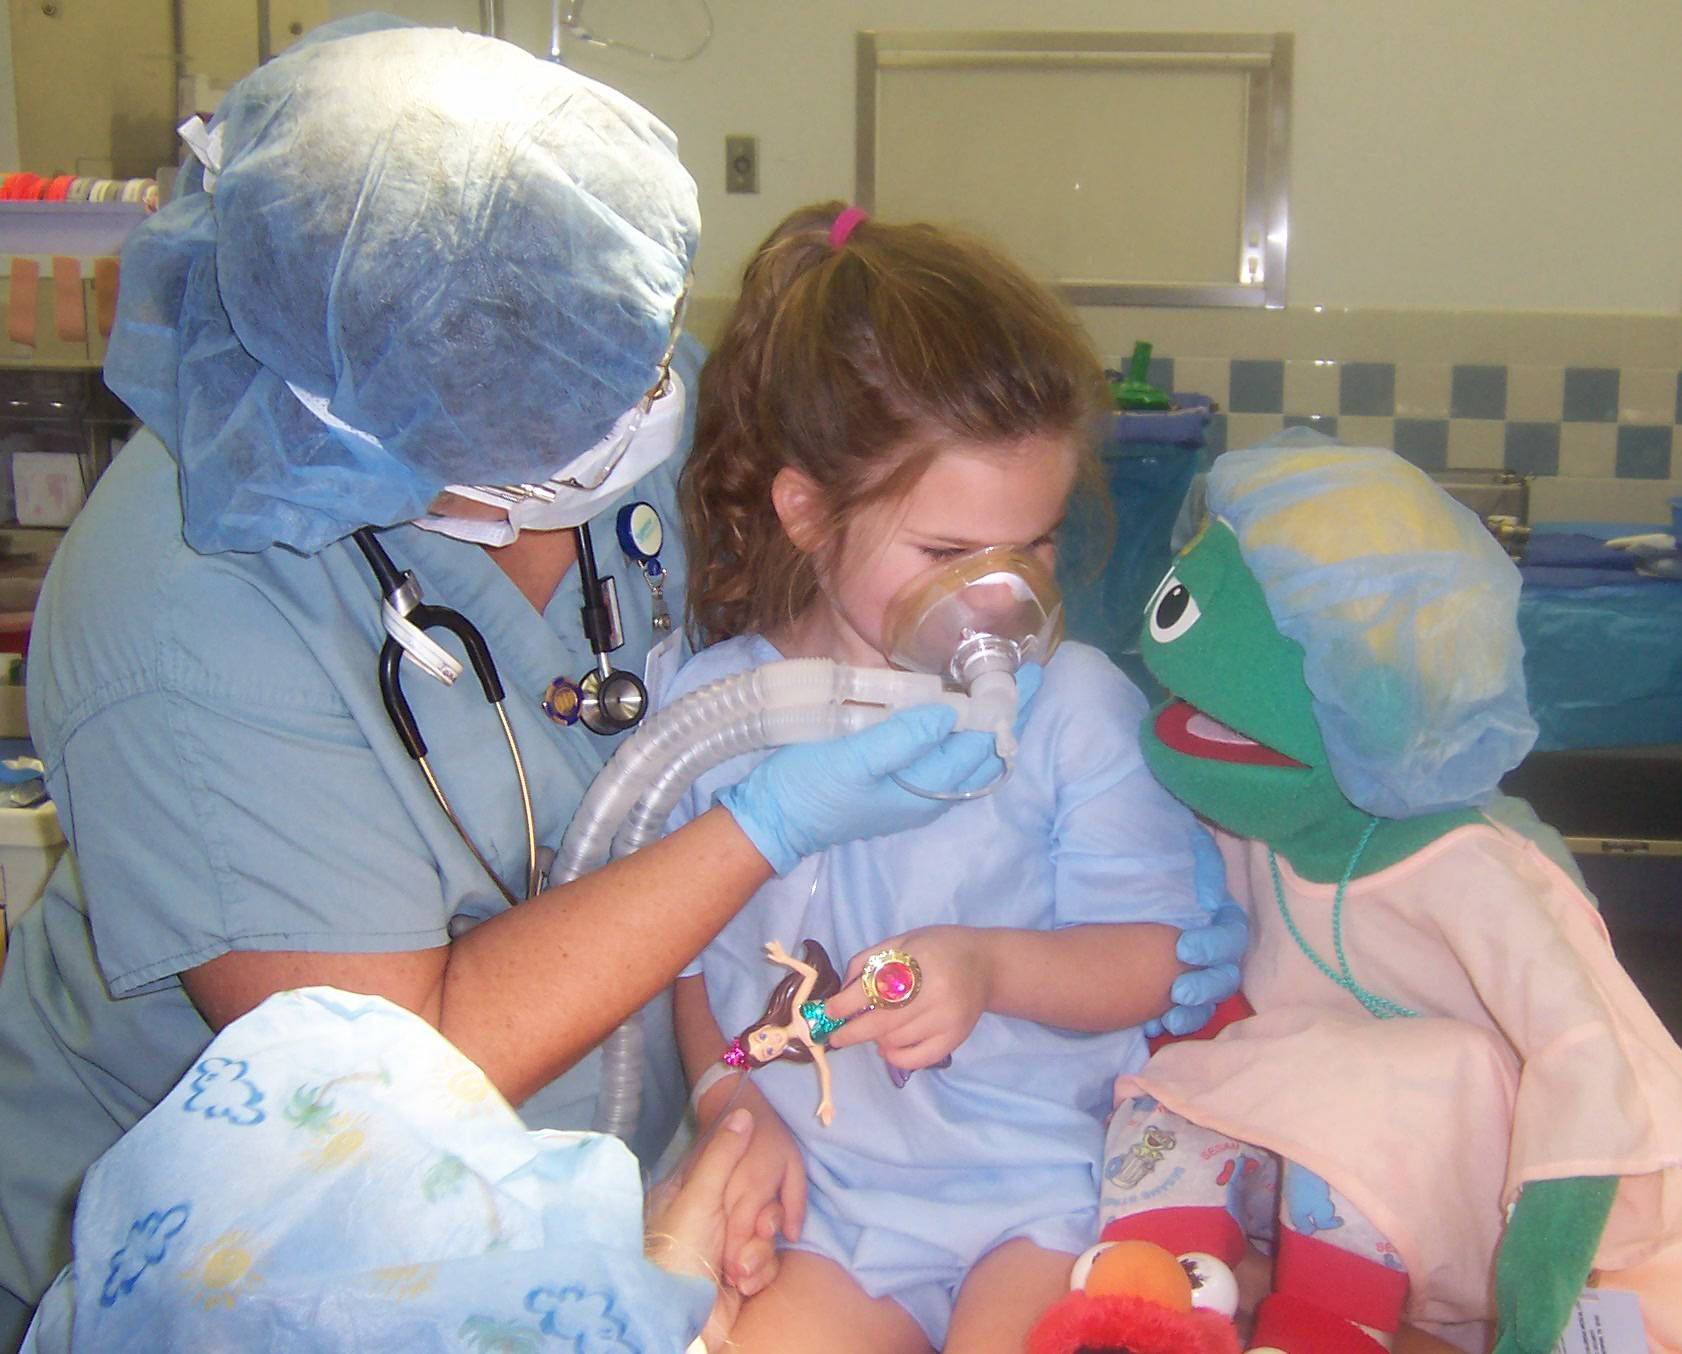 Pediatric Anesthesia With Bernard The Hospital Puppet  Nursing